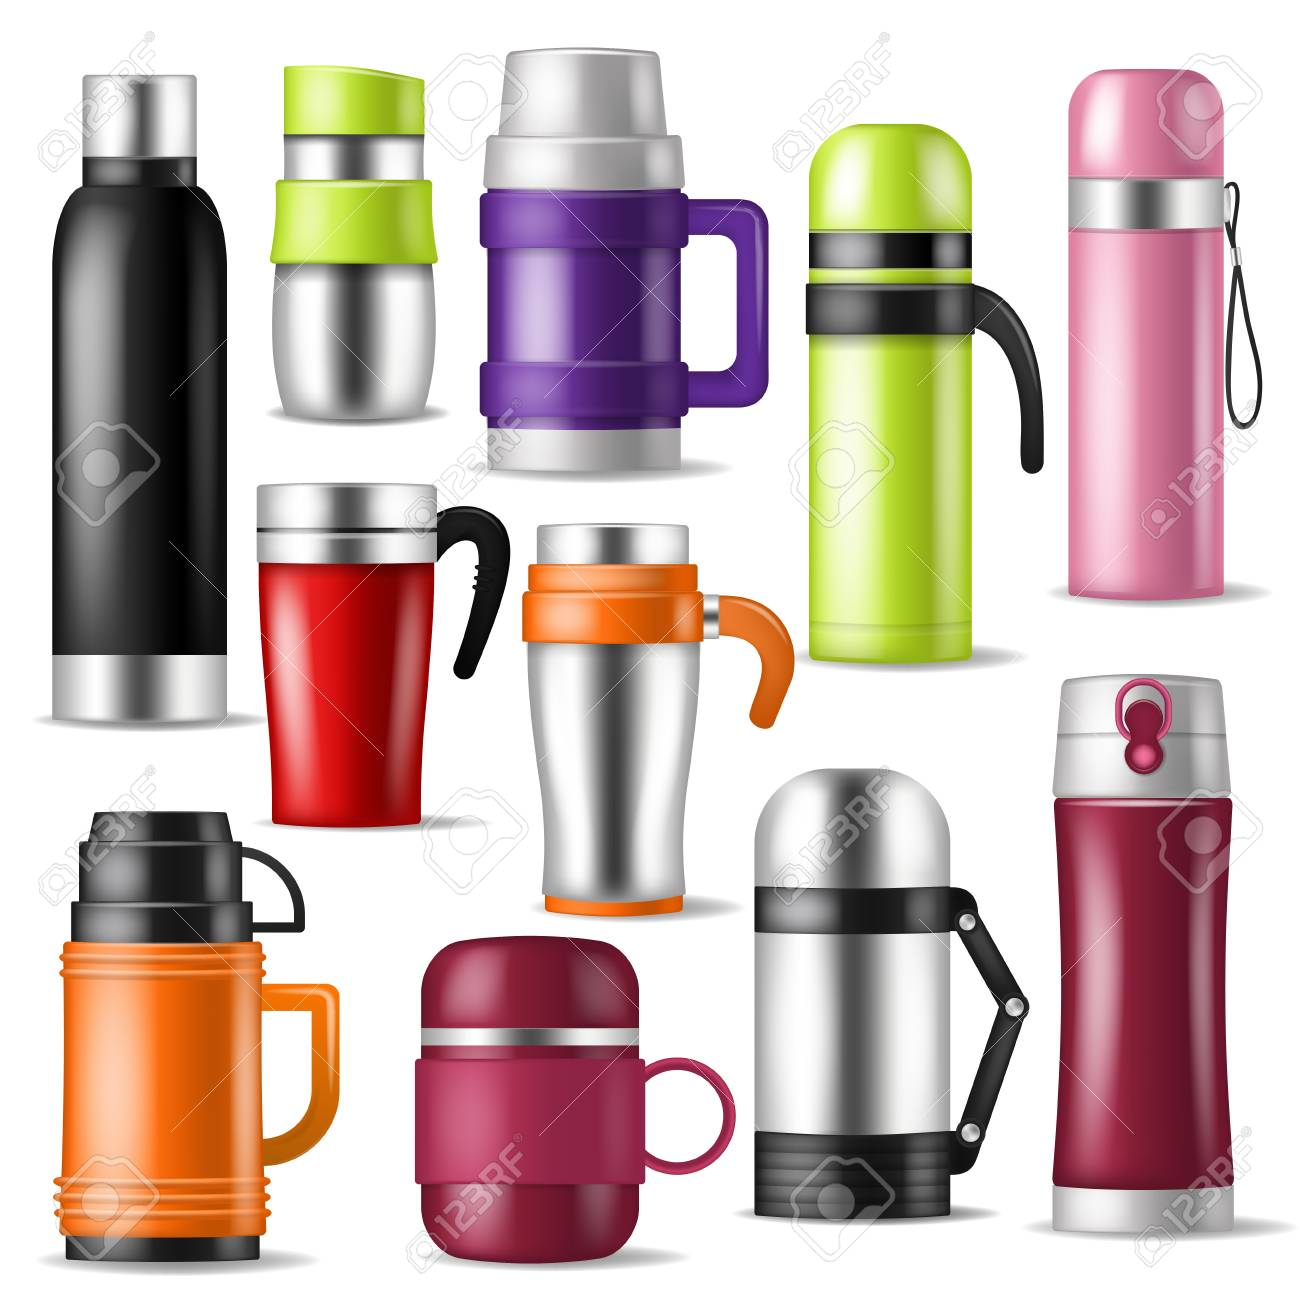 vector vacuum flask or bottle with hot drink coffee or tea illustration set of metal bottled container or aluminum mug isolated on white background - 105415654